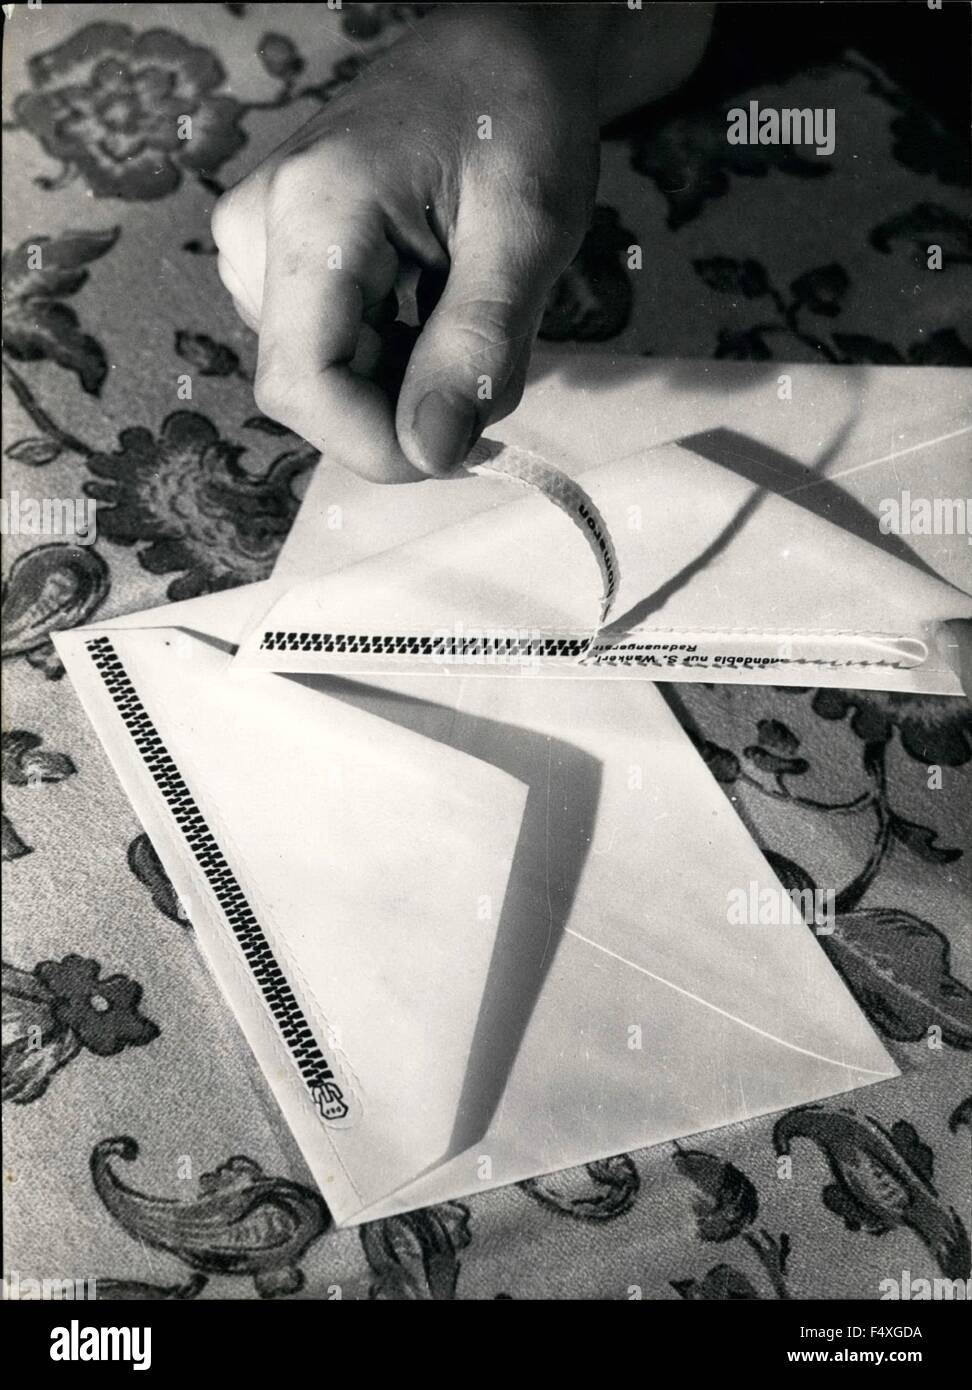 1968 - Envelope with zip fastener: The inventor of this envelope with zip fastener of paper is Alfons Miller of - Stock Image